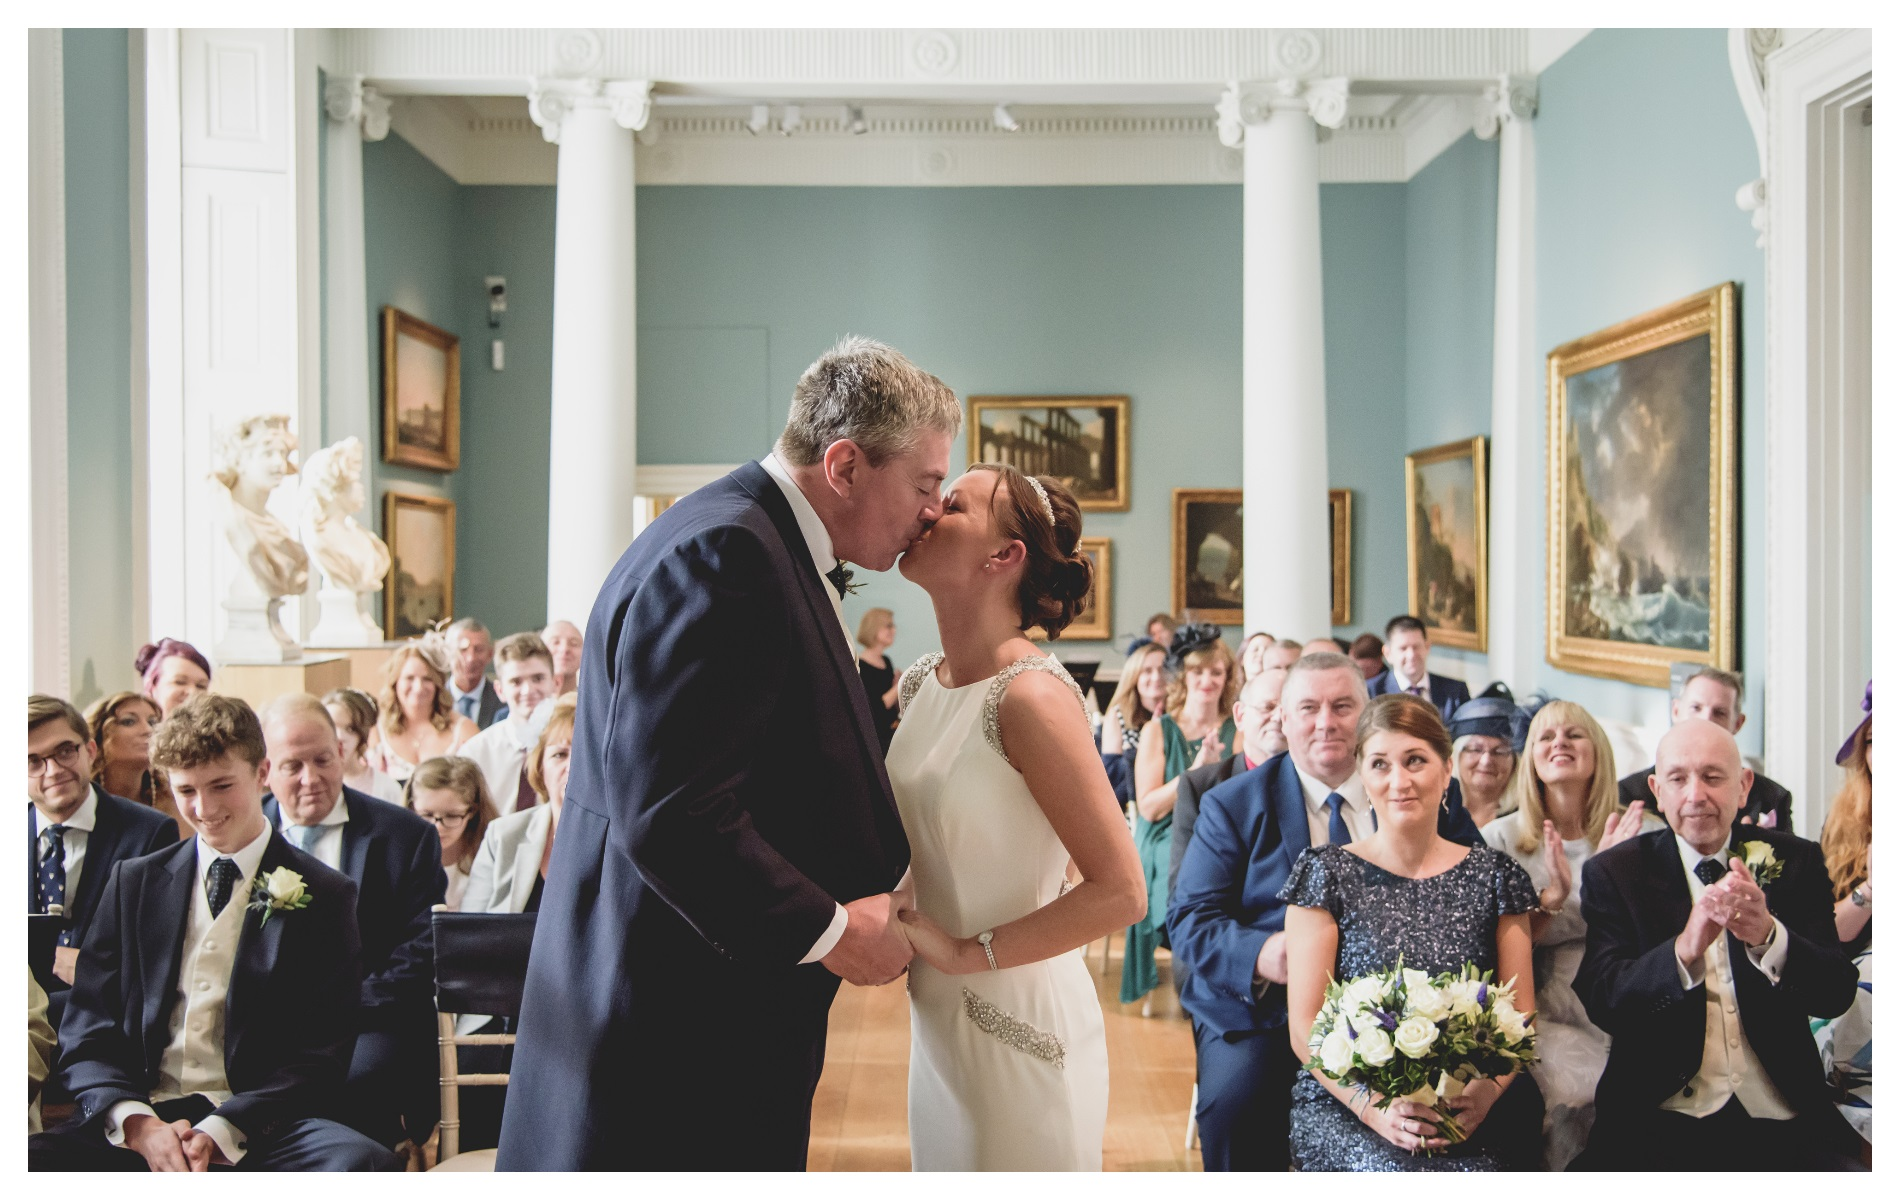 Compton Verney Wedding Photography by Chris Fossey Photography Claire 6